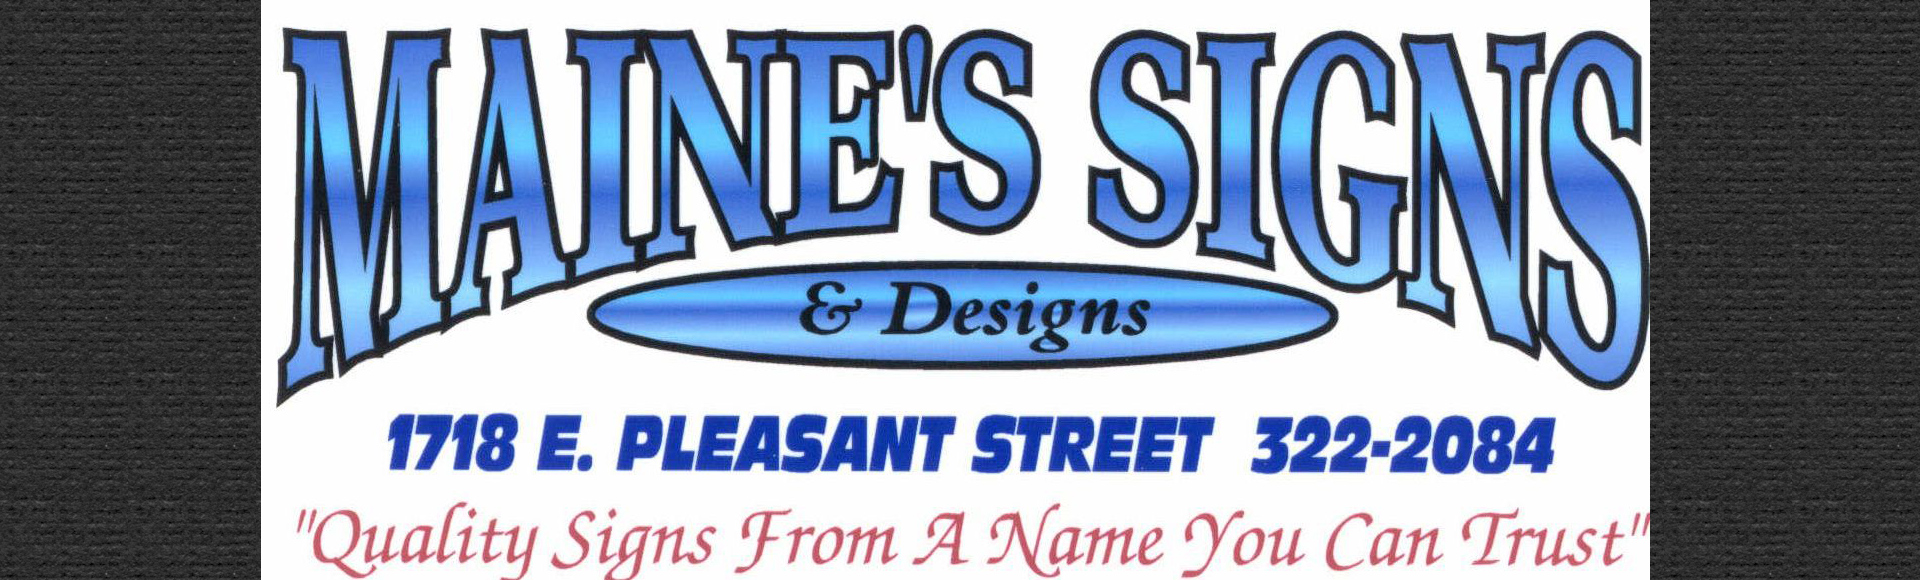 Maine's Signs - Quality signs from a name you can trust.